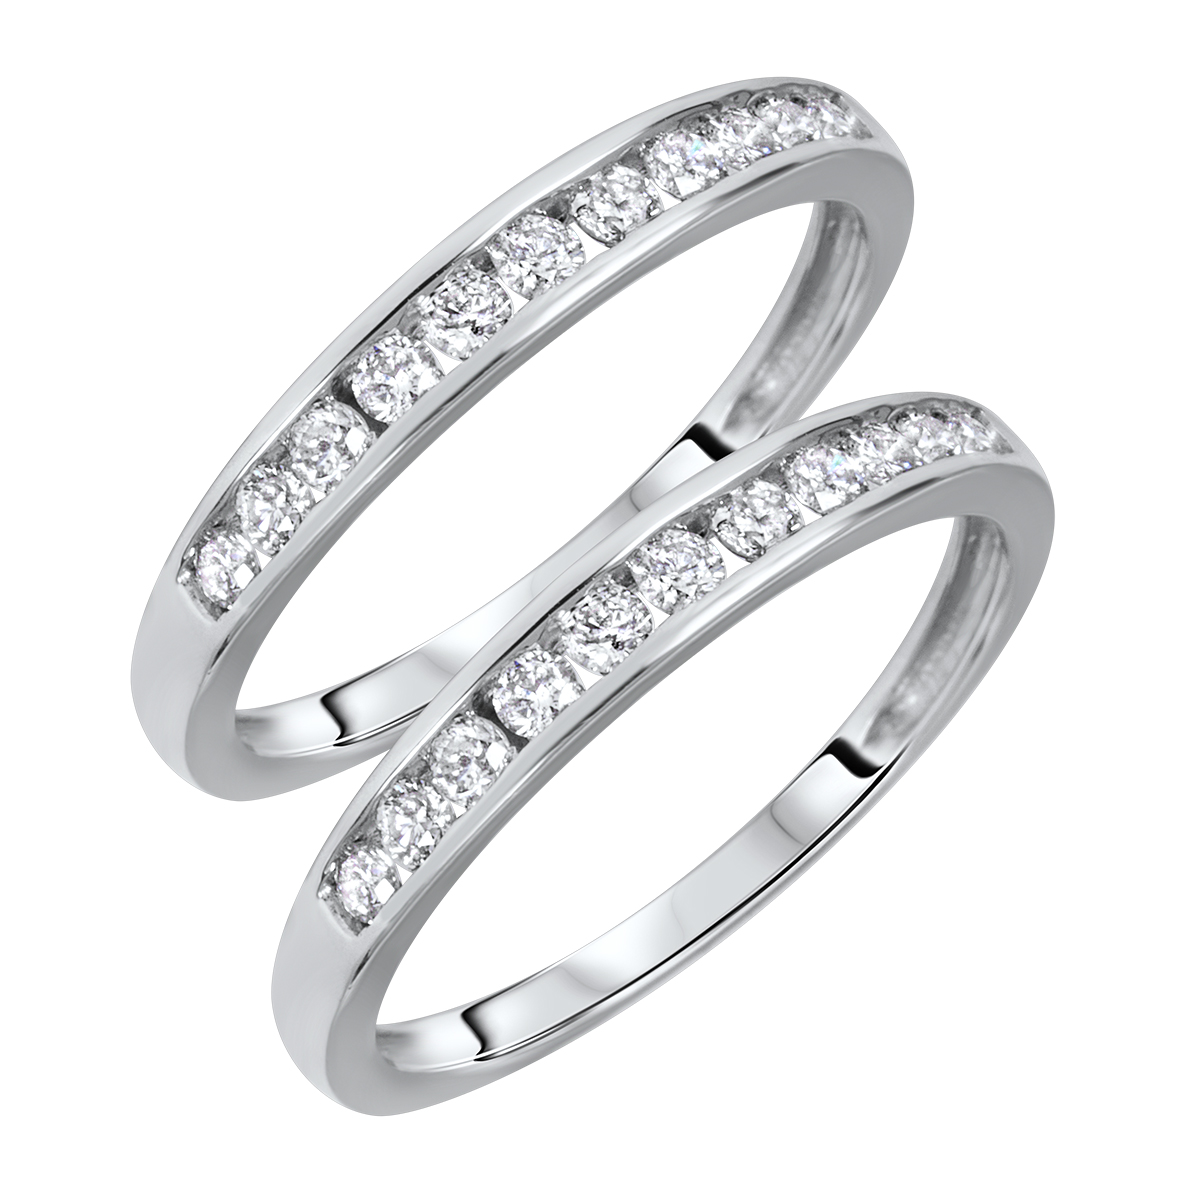 1/2 Carat T.W. Round Cut Ladies Same Sex Wedding Band Set 14K White Gold- Size 8